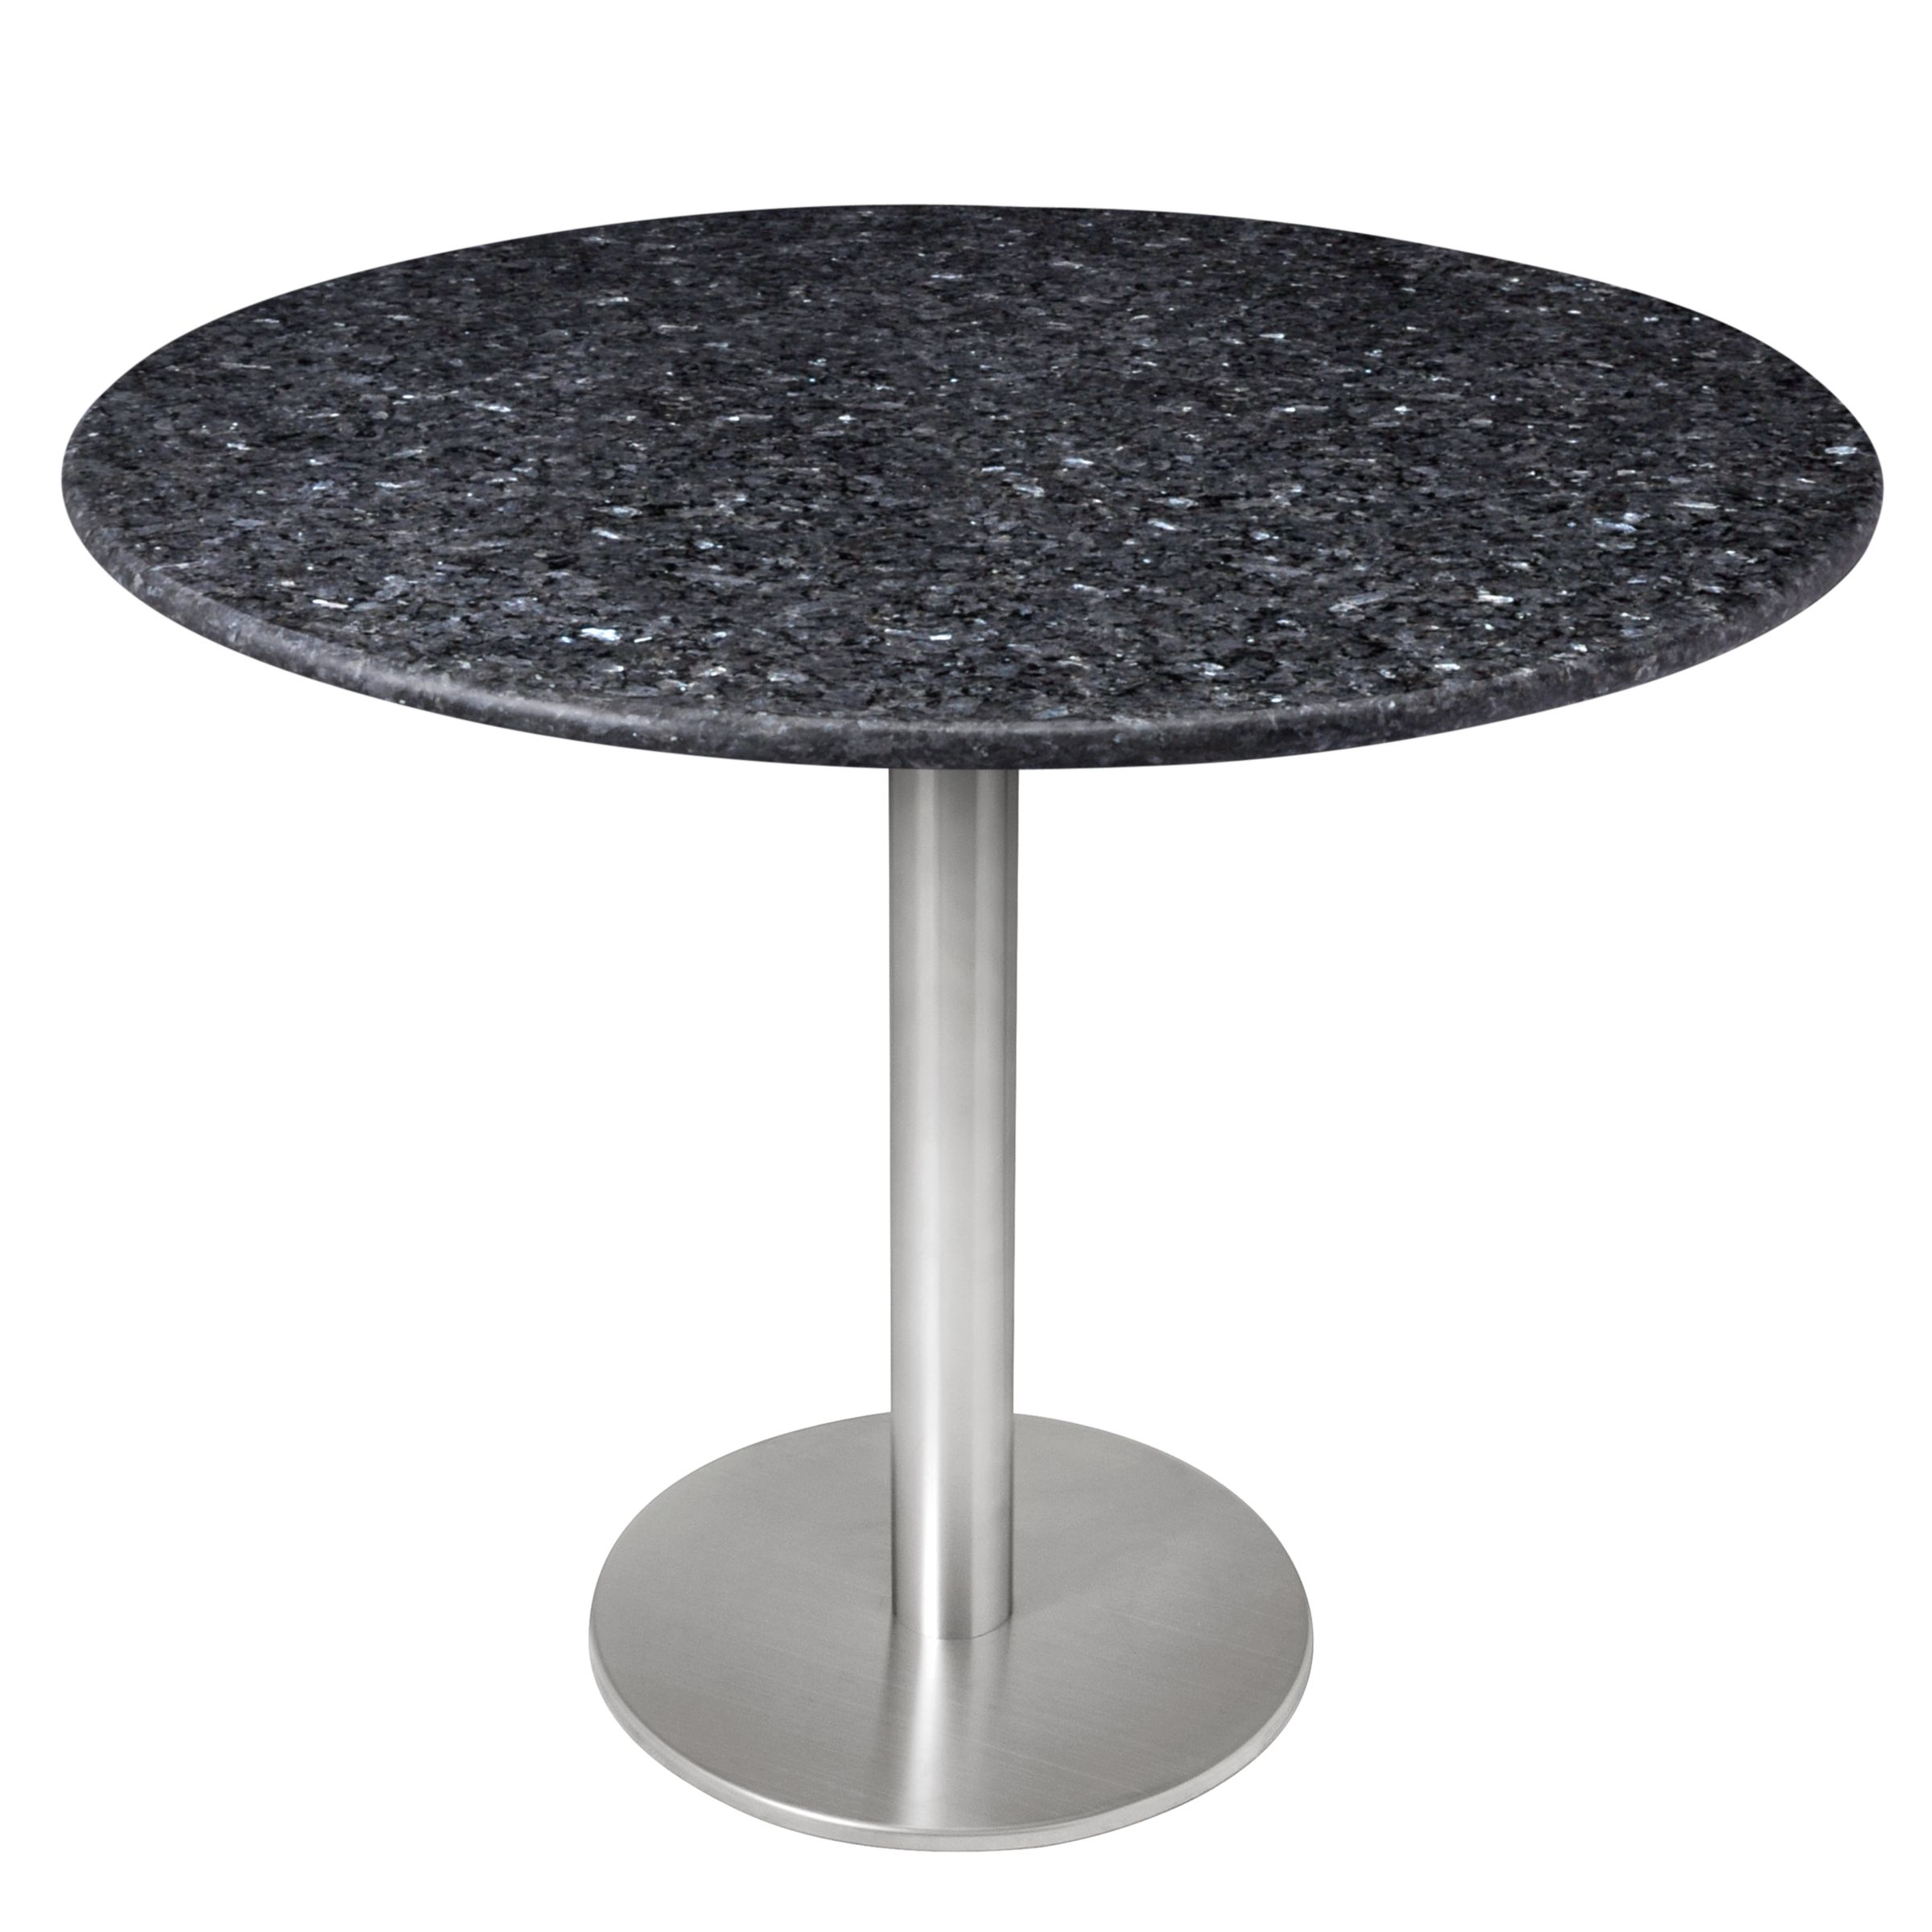 granite tables : 231289473 from www.comparestoreprices.co.uk size 1600 x 1600 jpeg 228kB